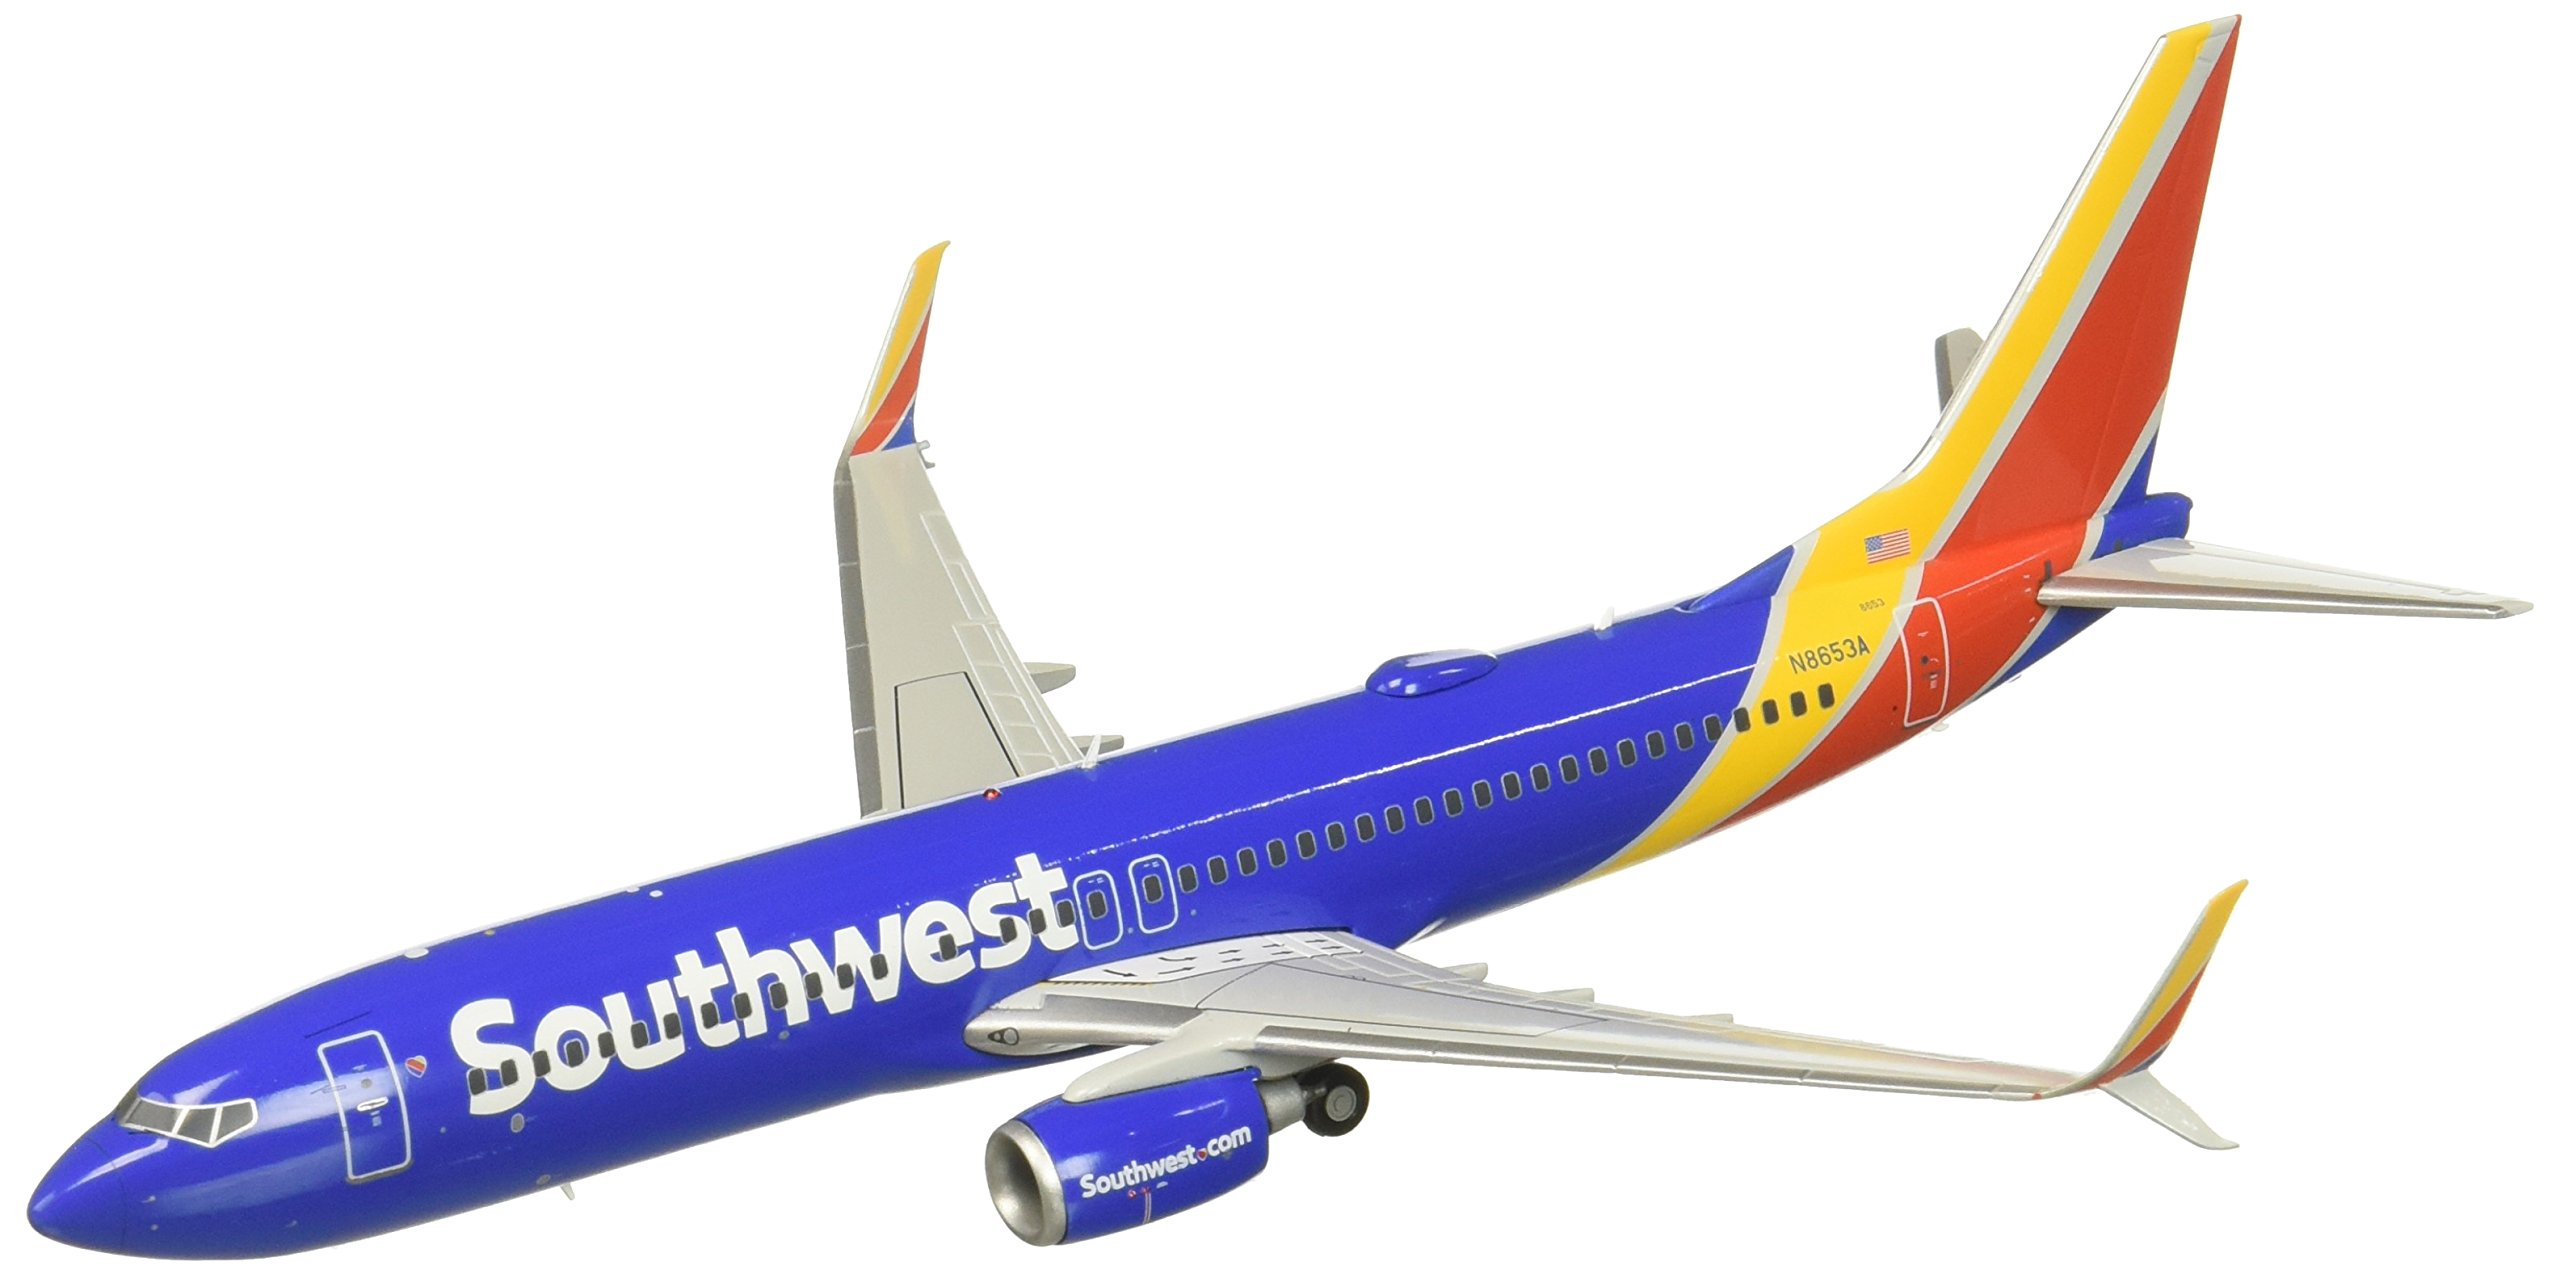 Gemini200 Southwest Airlines B737-800 N8653A 1:200 Scale Model Airplane Die Cast Aircraft